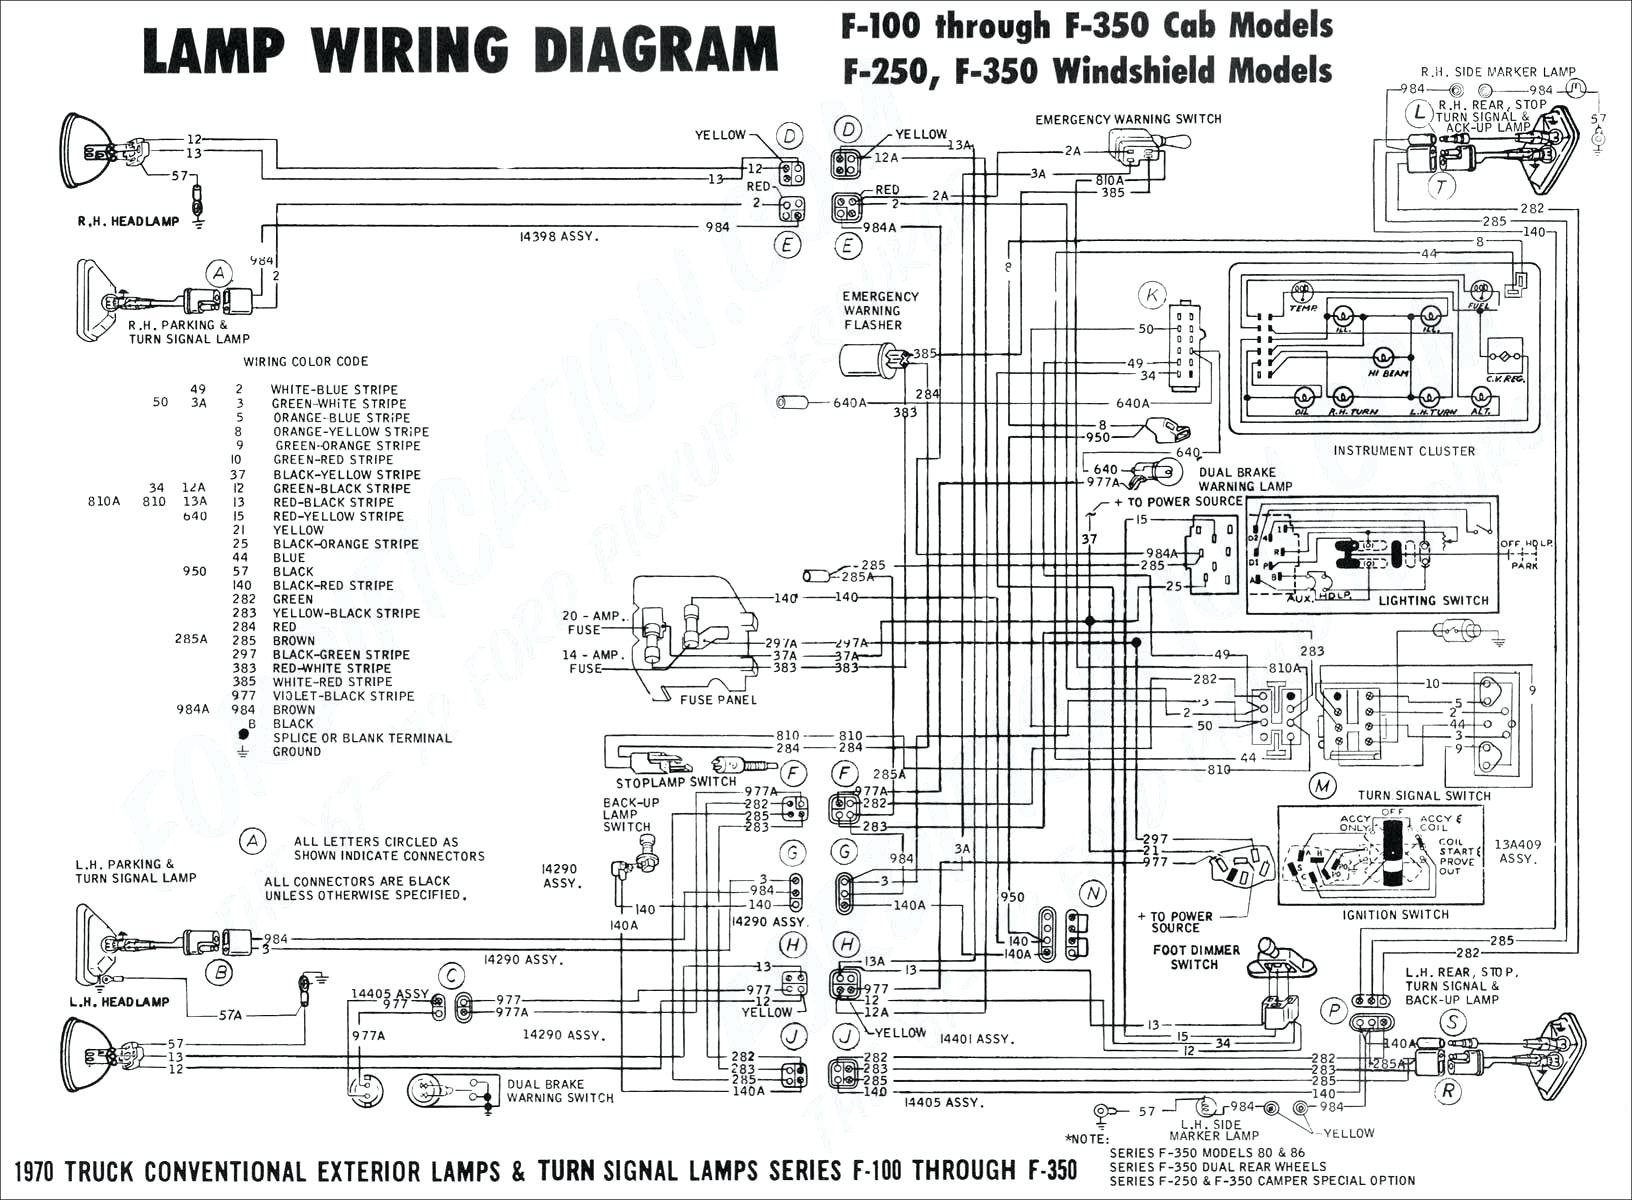 Boeing Wiring Diagram | Wiring Diagram on